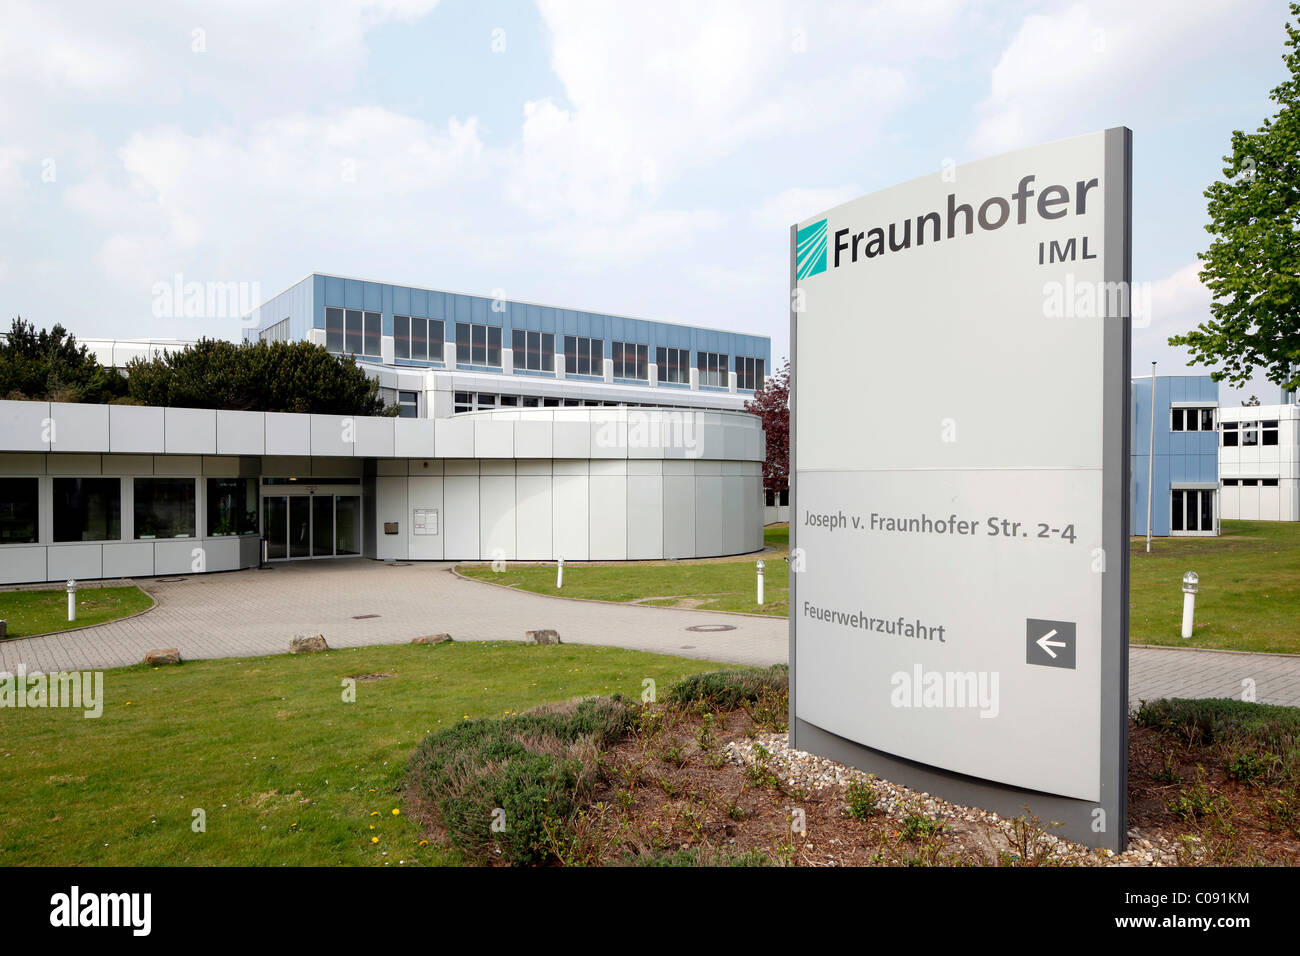 Fraunhofer Institute for Material Flow and Logistics, Dortmund Technology Park, Dortmund, Ruhr Area, North Rhine - Stock Image